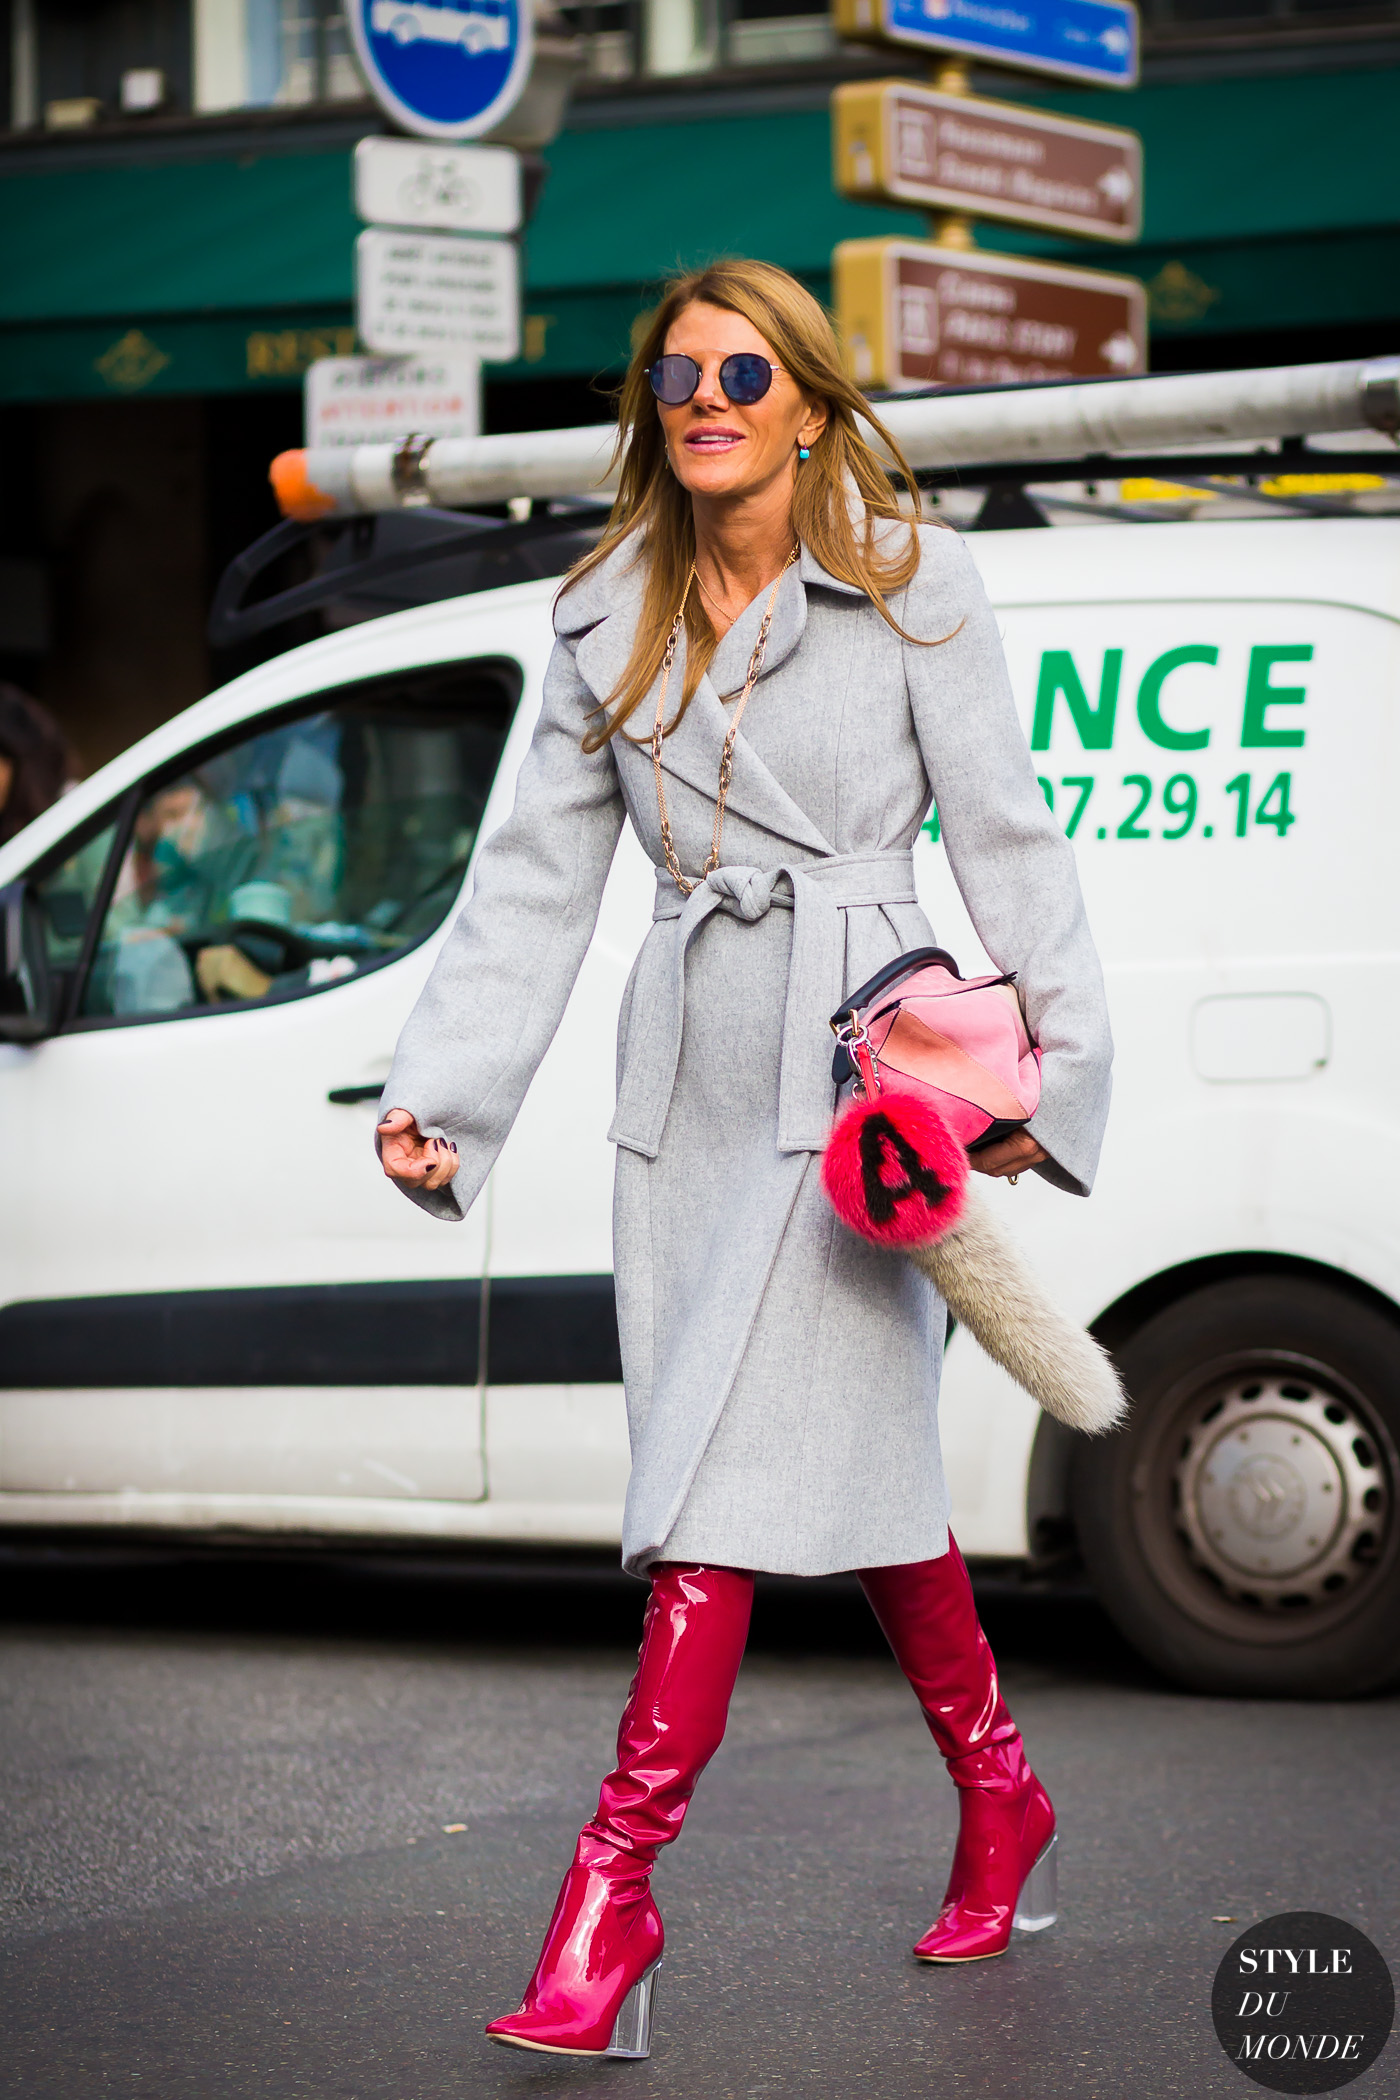 Anna Dello Russo Street Style Street Fashion Streetsnaps by STYLEDUMONDE Street Style Fashion Photography